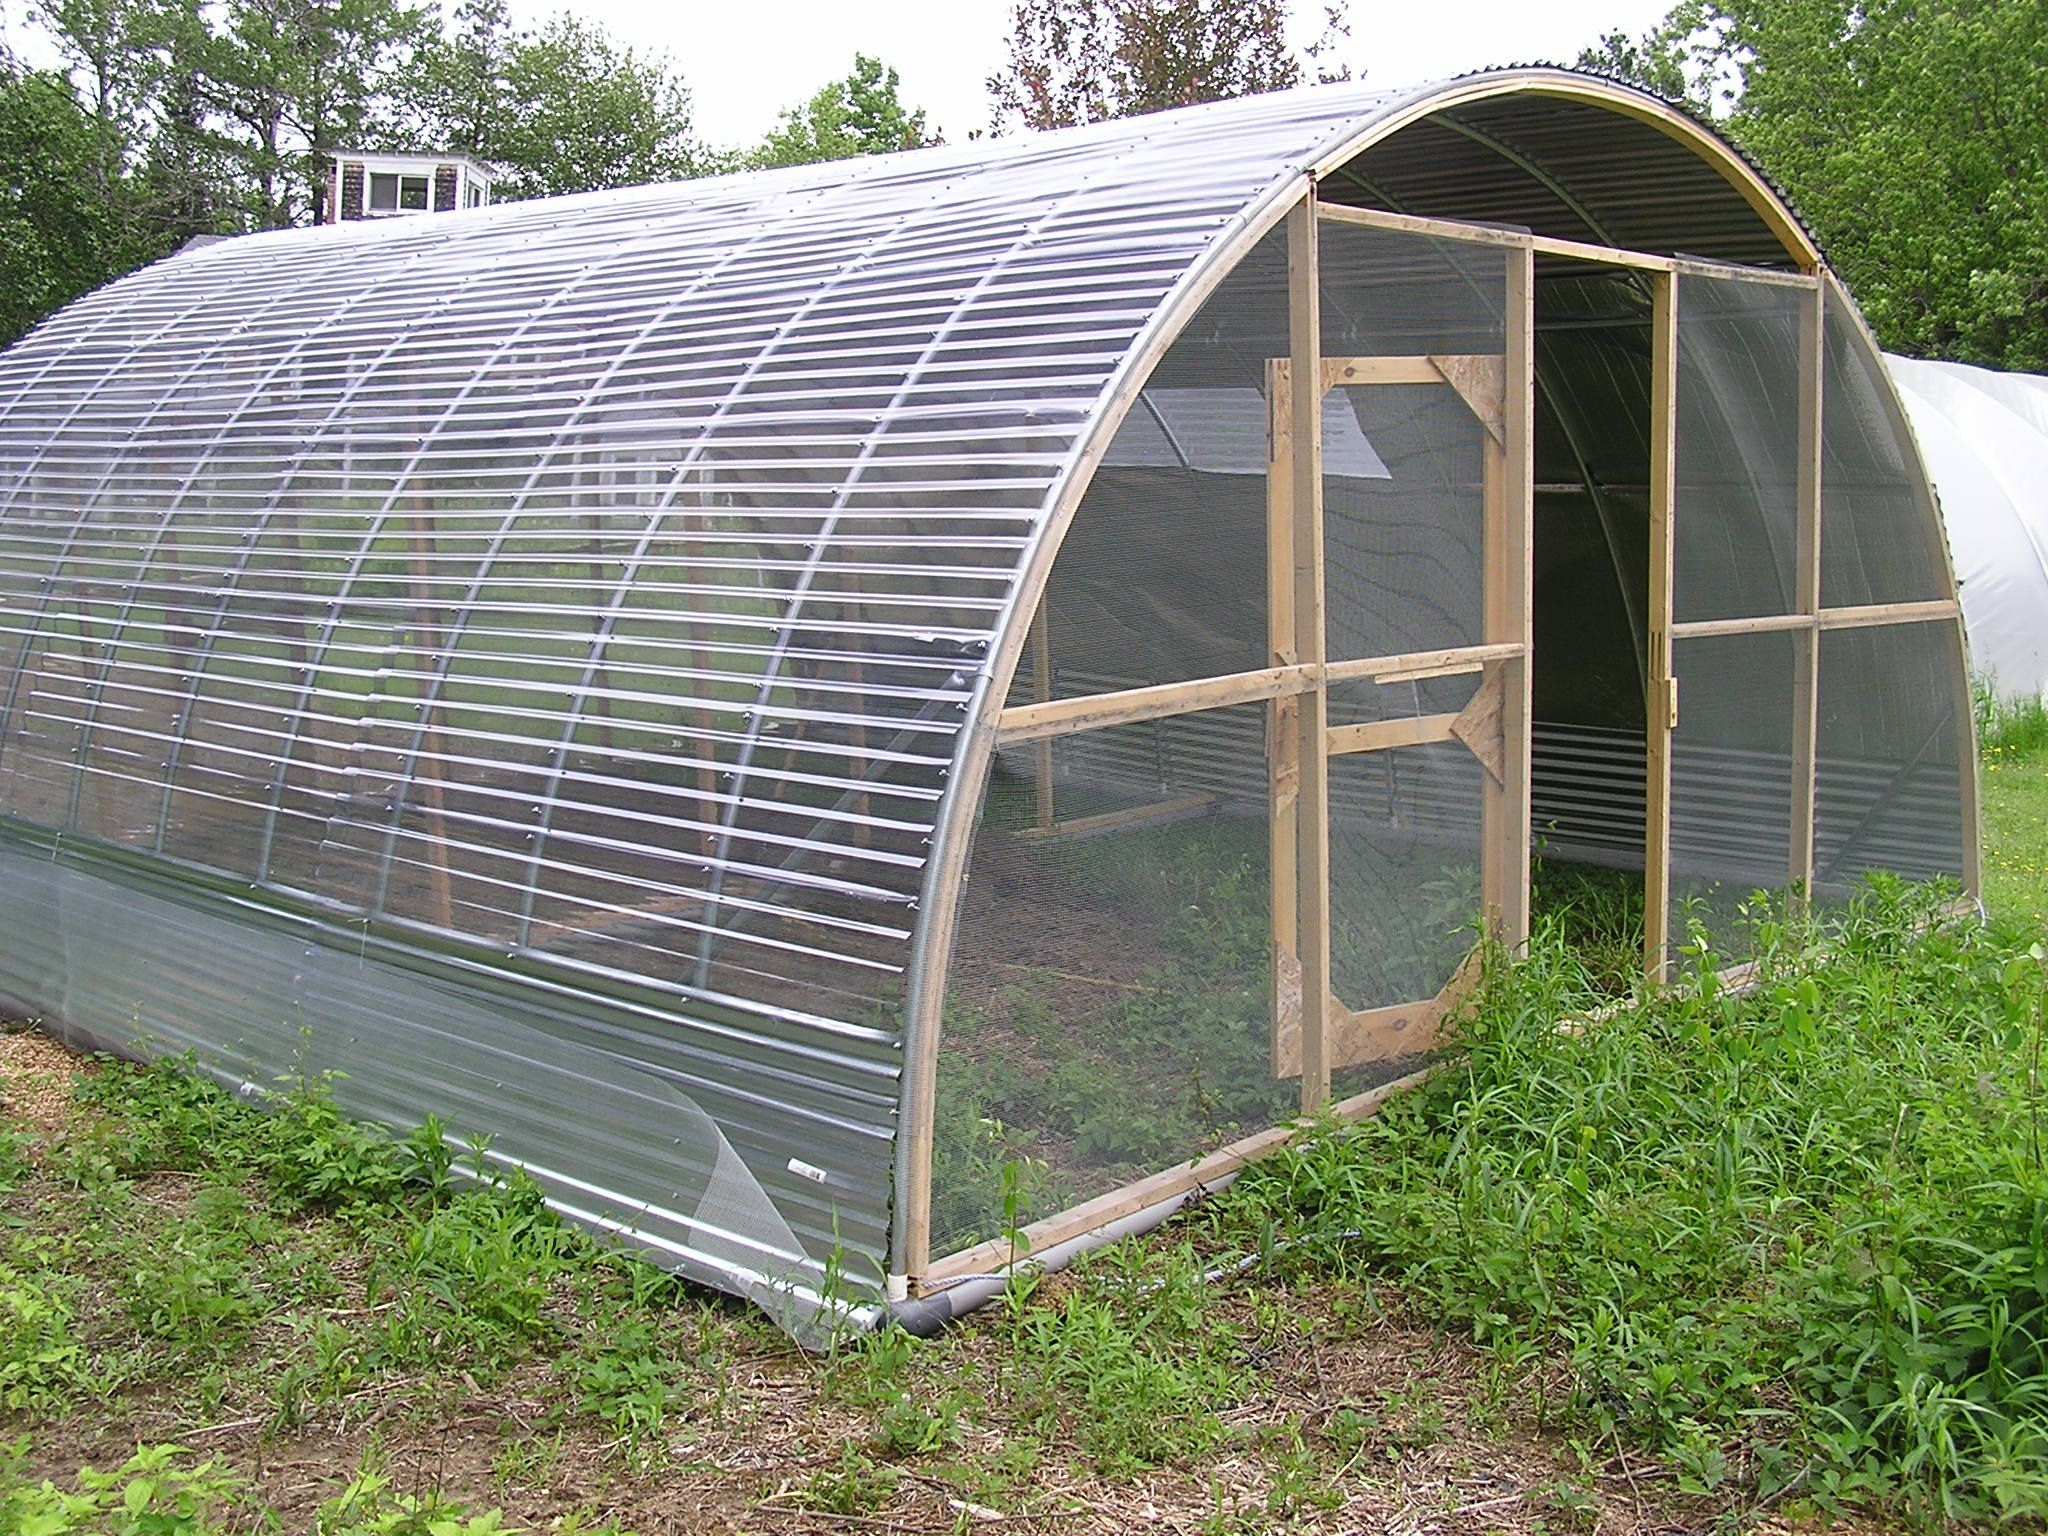 Citaten Hoop House : Hoop house poulailler pinterest poulaillers serre